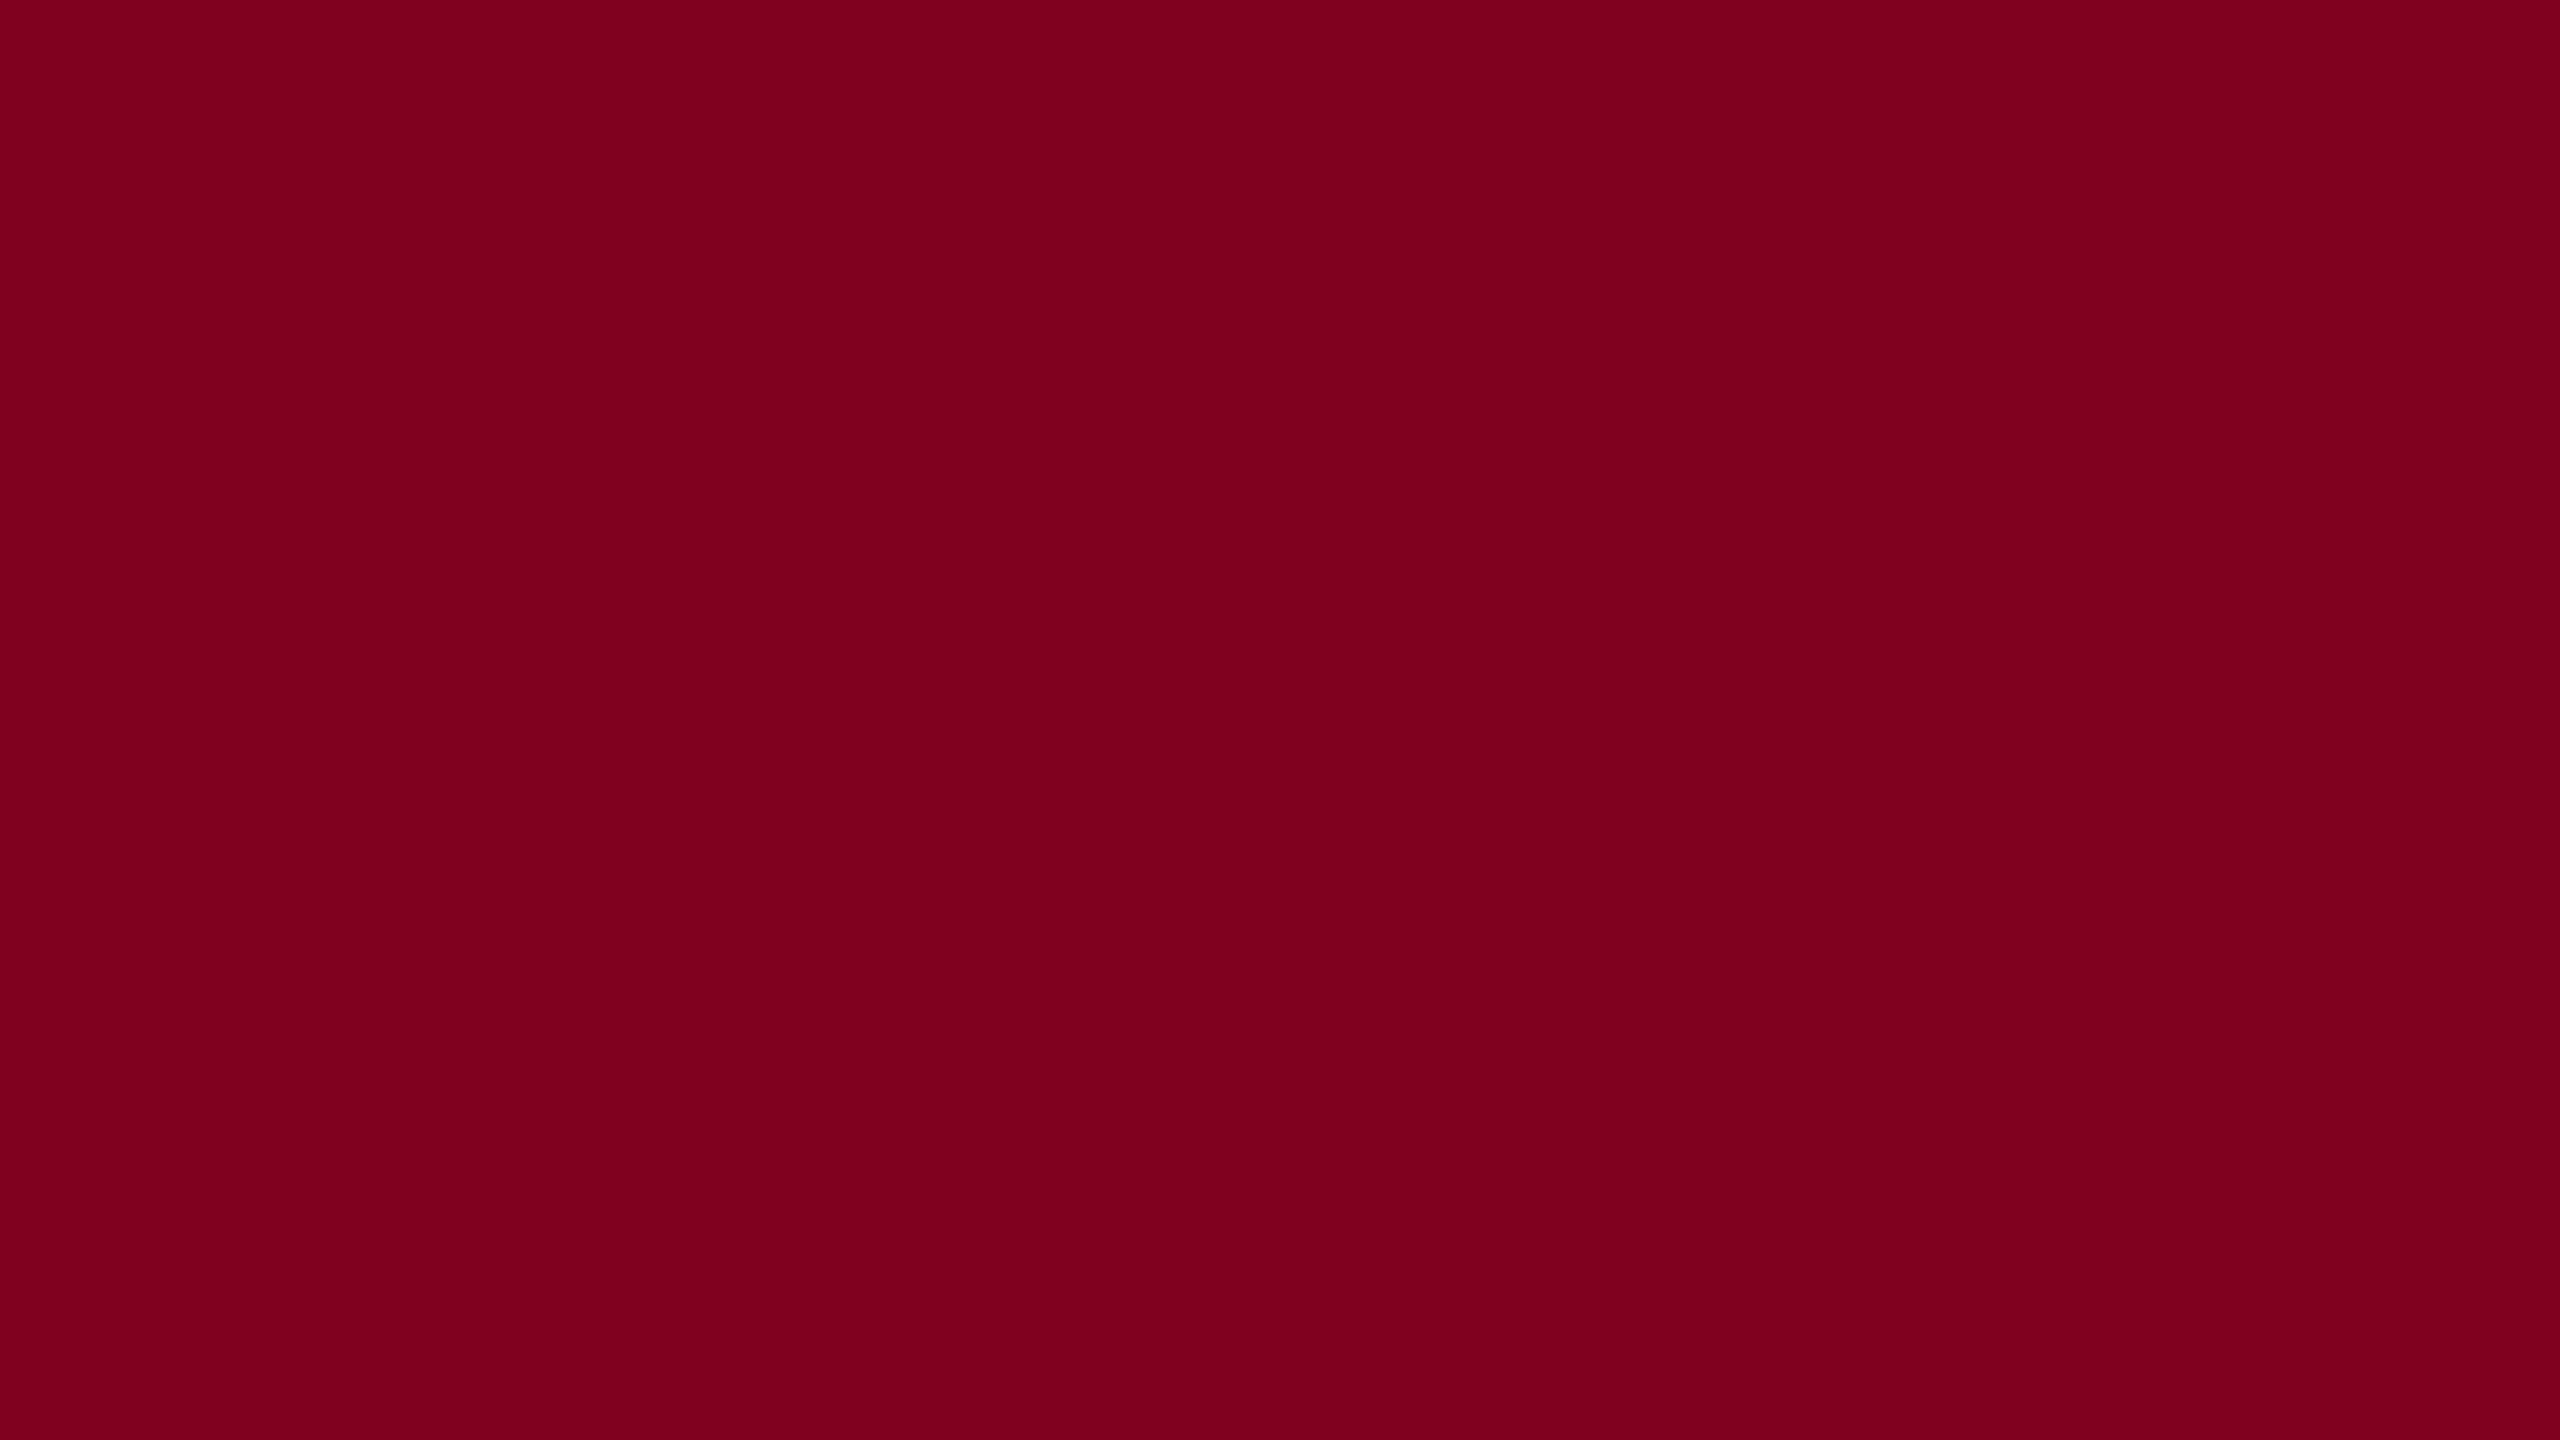 Burgundy Wallpaper Background 51 Images HD Wallpapers Download Free Images Wallpaper [1000image.com]